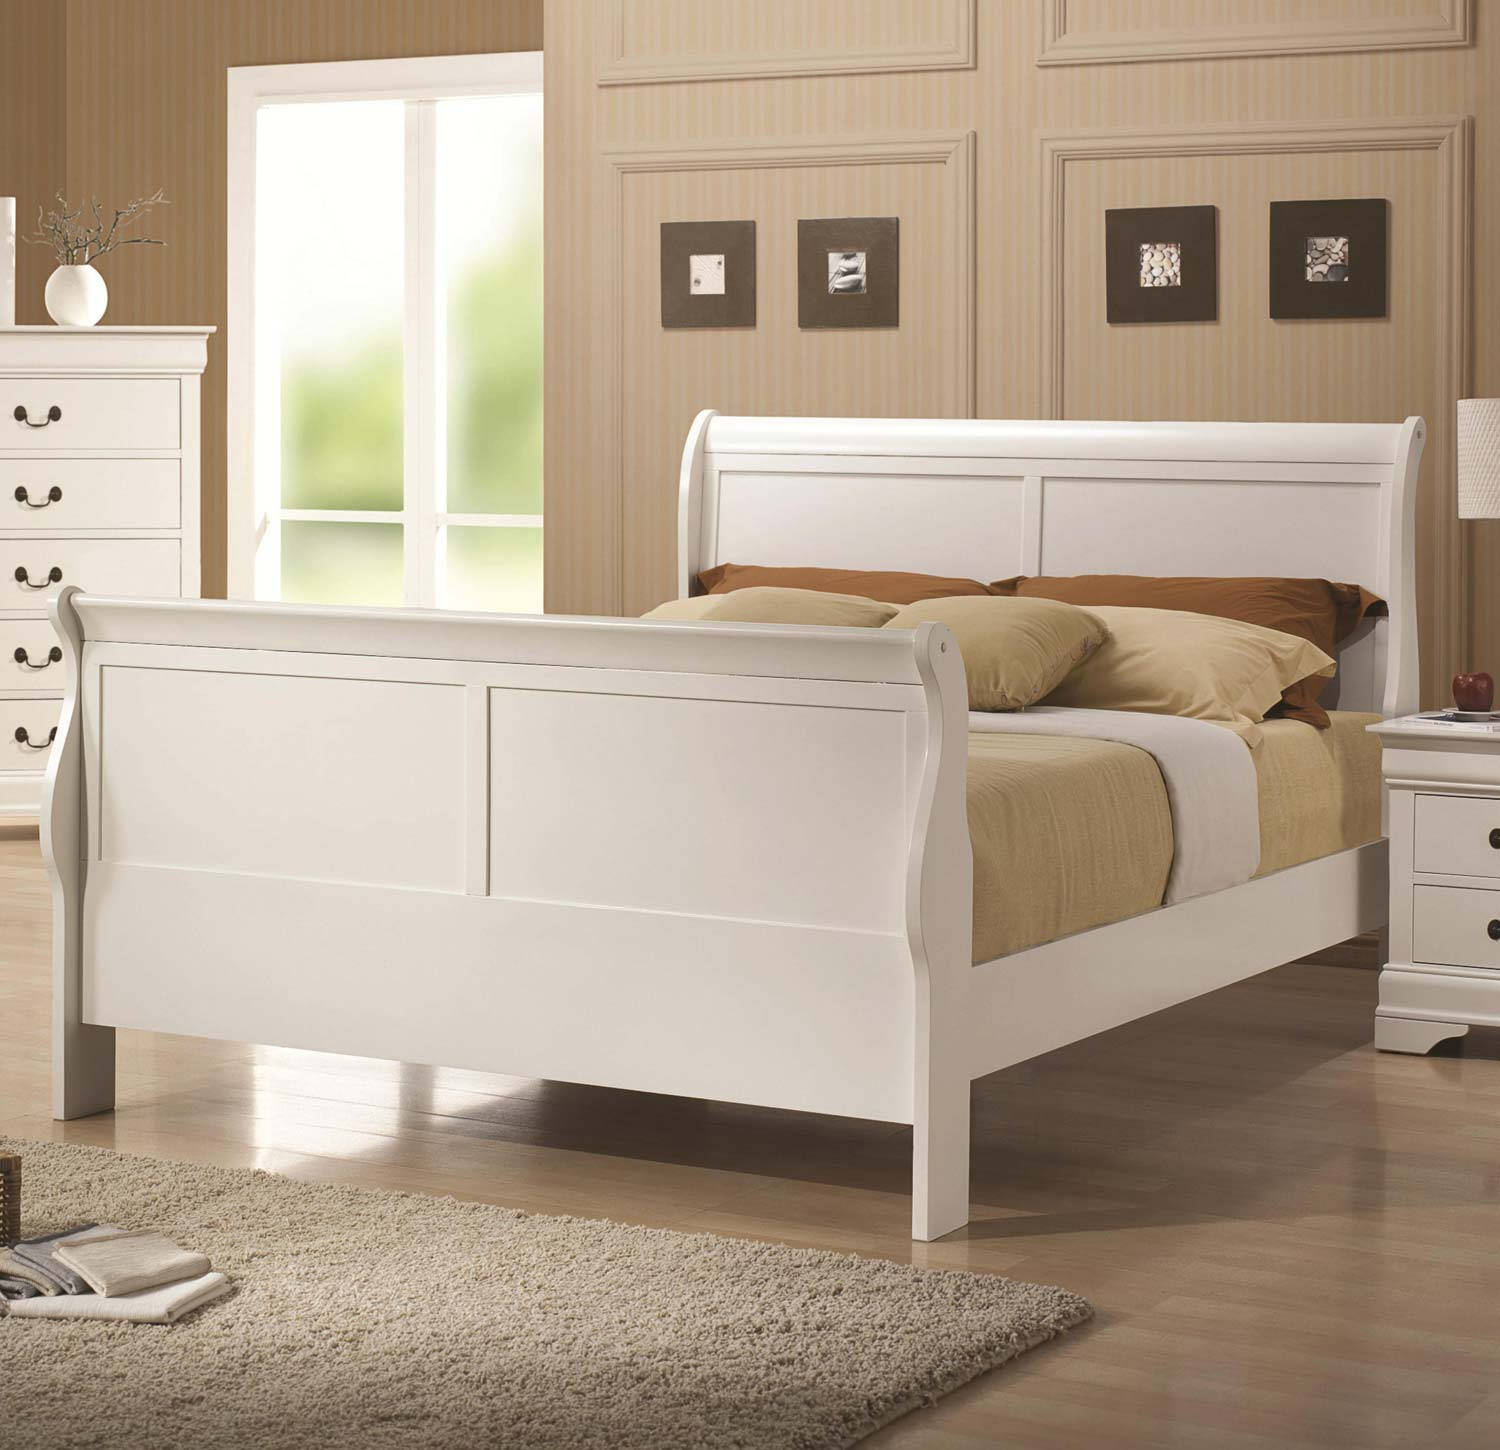 Coaster Louis Philippe Bed - White